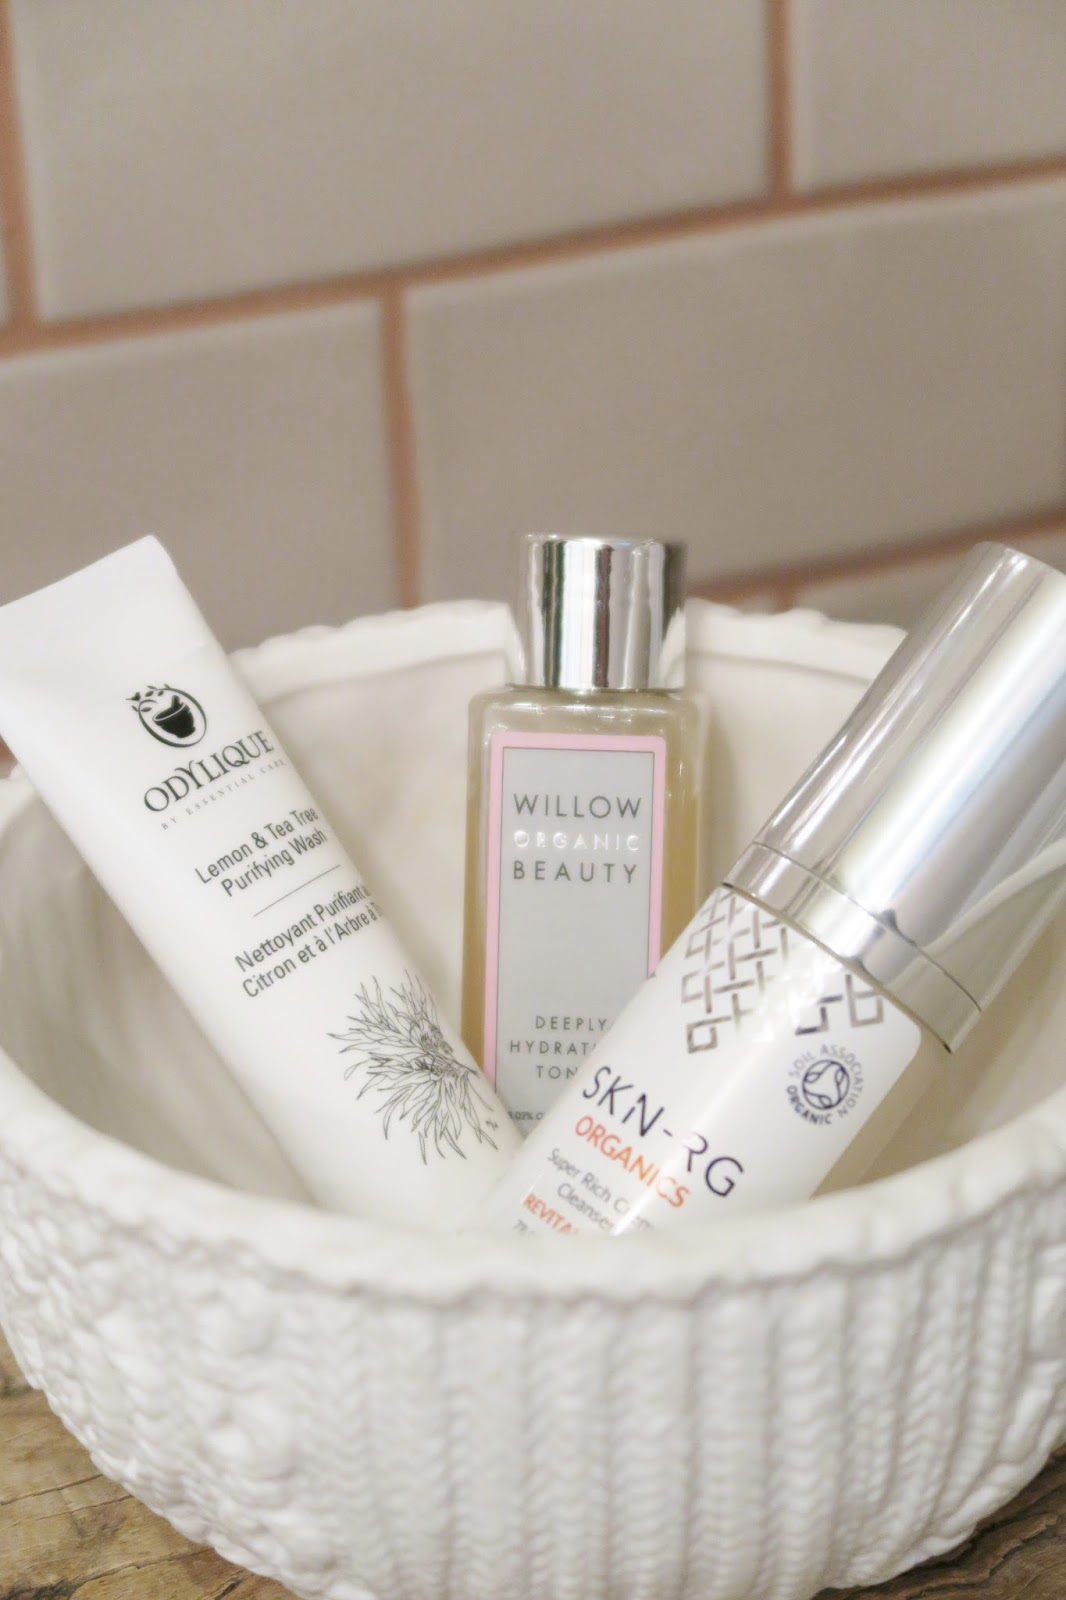 Totally Organic | Soil Association certified skincare brands